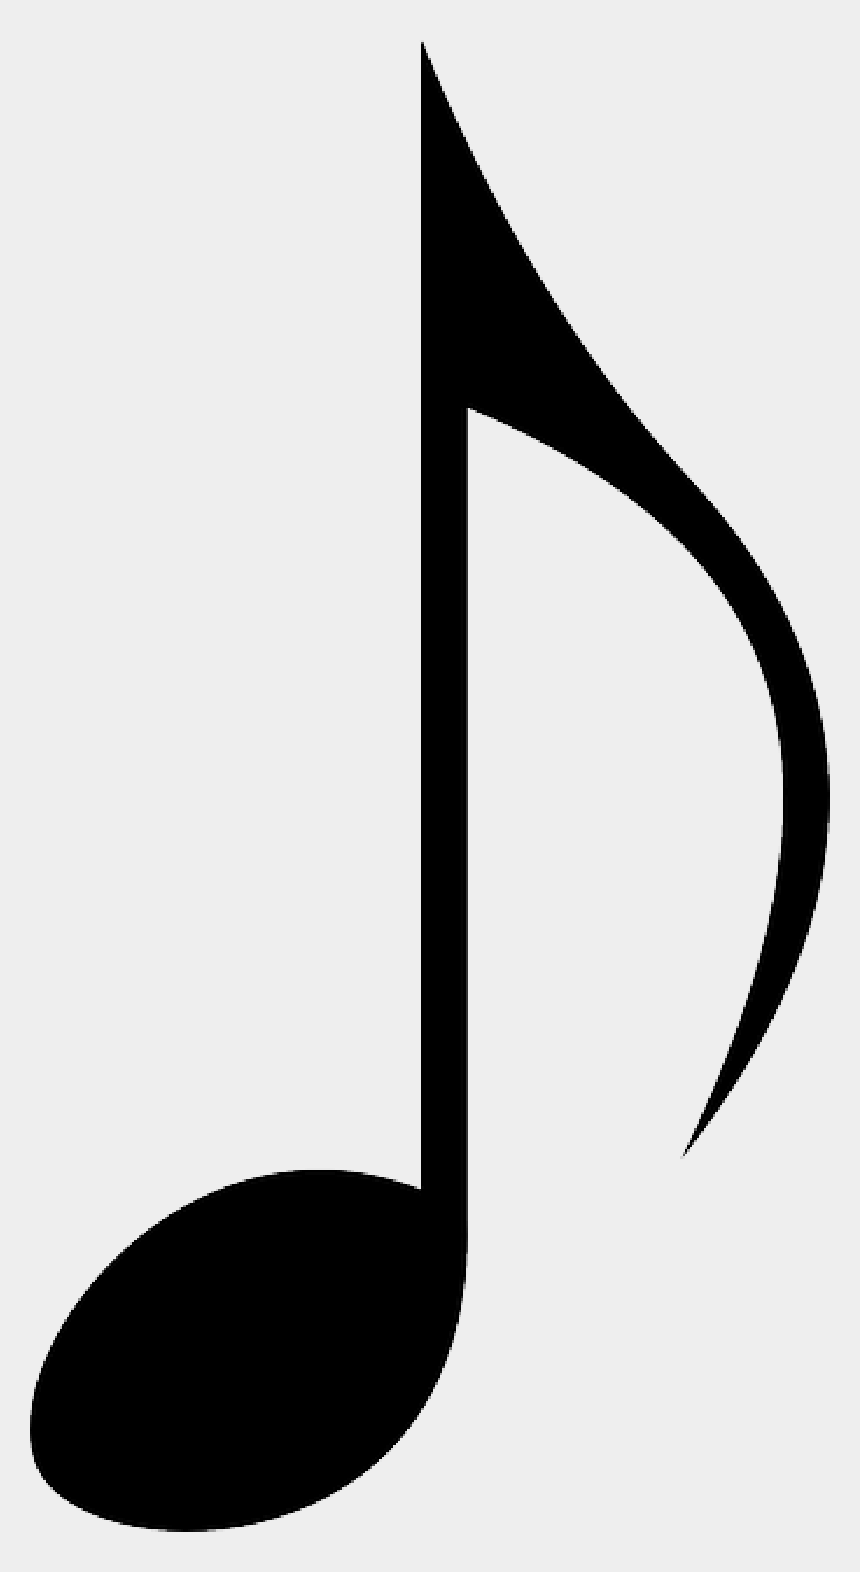 music note clipart, Cartoons - Music Notes Black And White Clipart Music Note - Music Notes Clipart